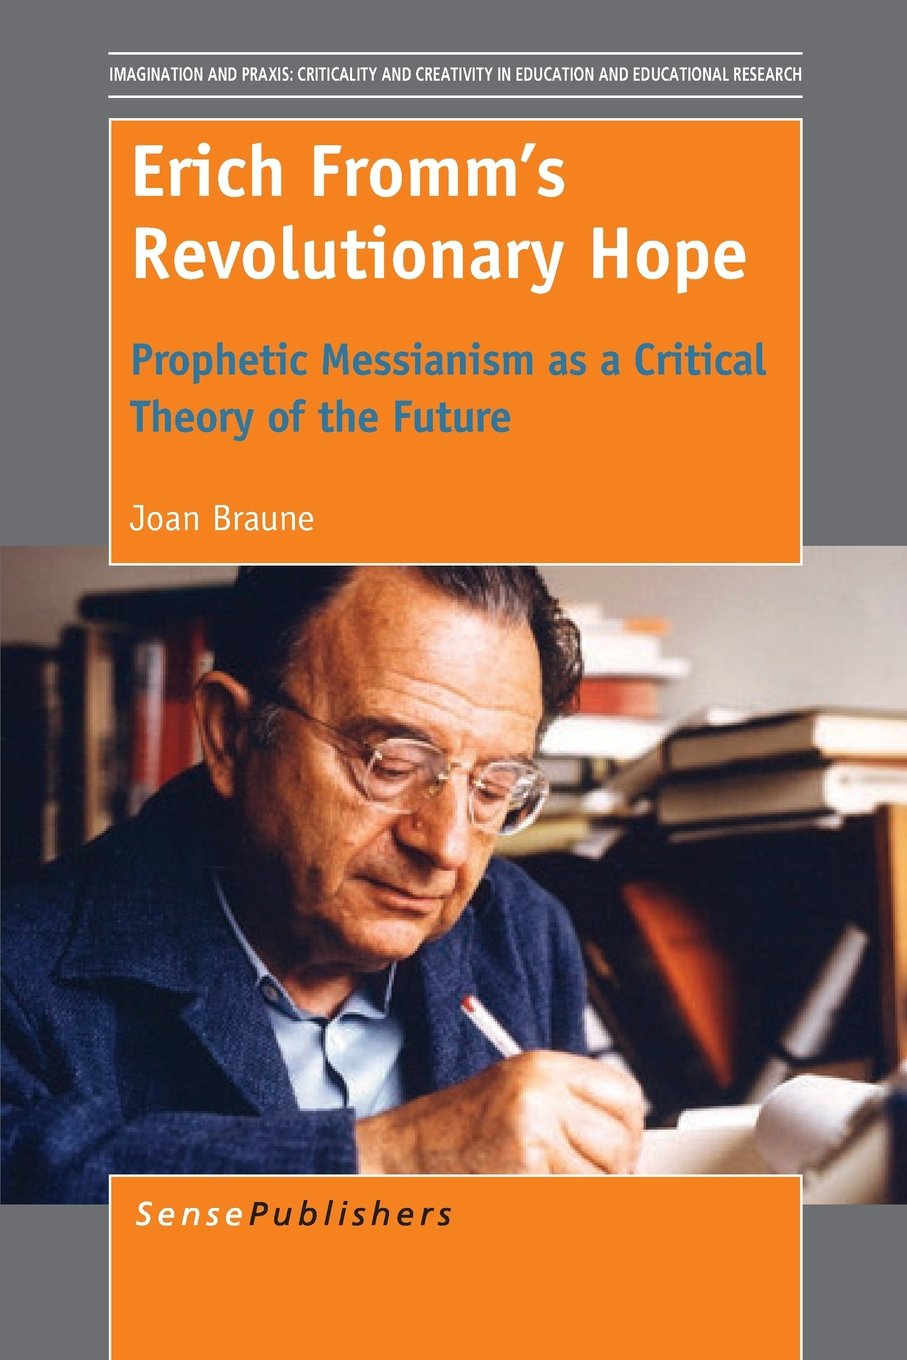 Erich Fromm's Revolutionary Hope: Prophetic Messianism as a Critical Theory of the Future (Imagination and Praxis: Criticality and Creativity in Education and Educational Research) ebook